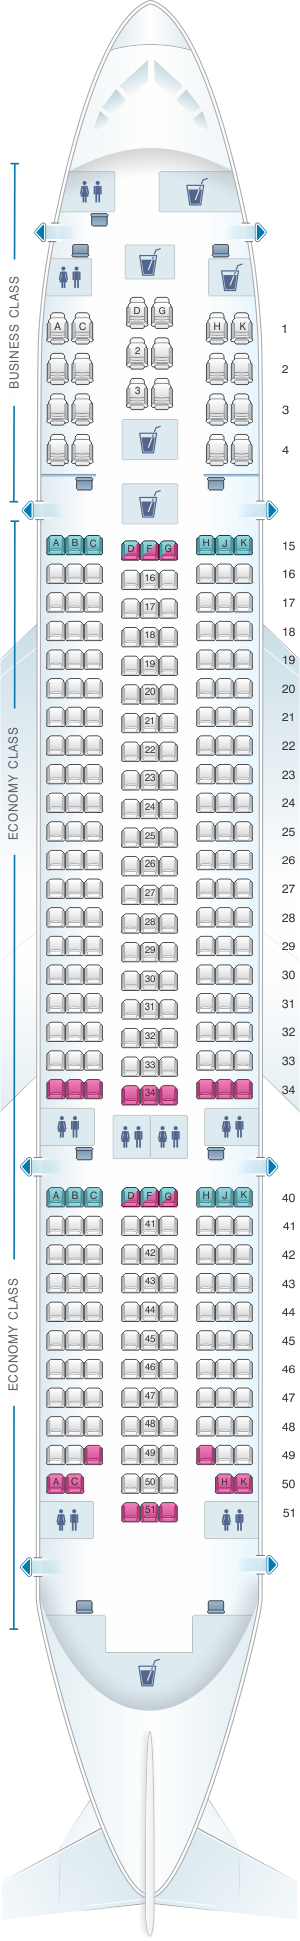 Seat map for Air Europa Boeing B787 8